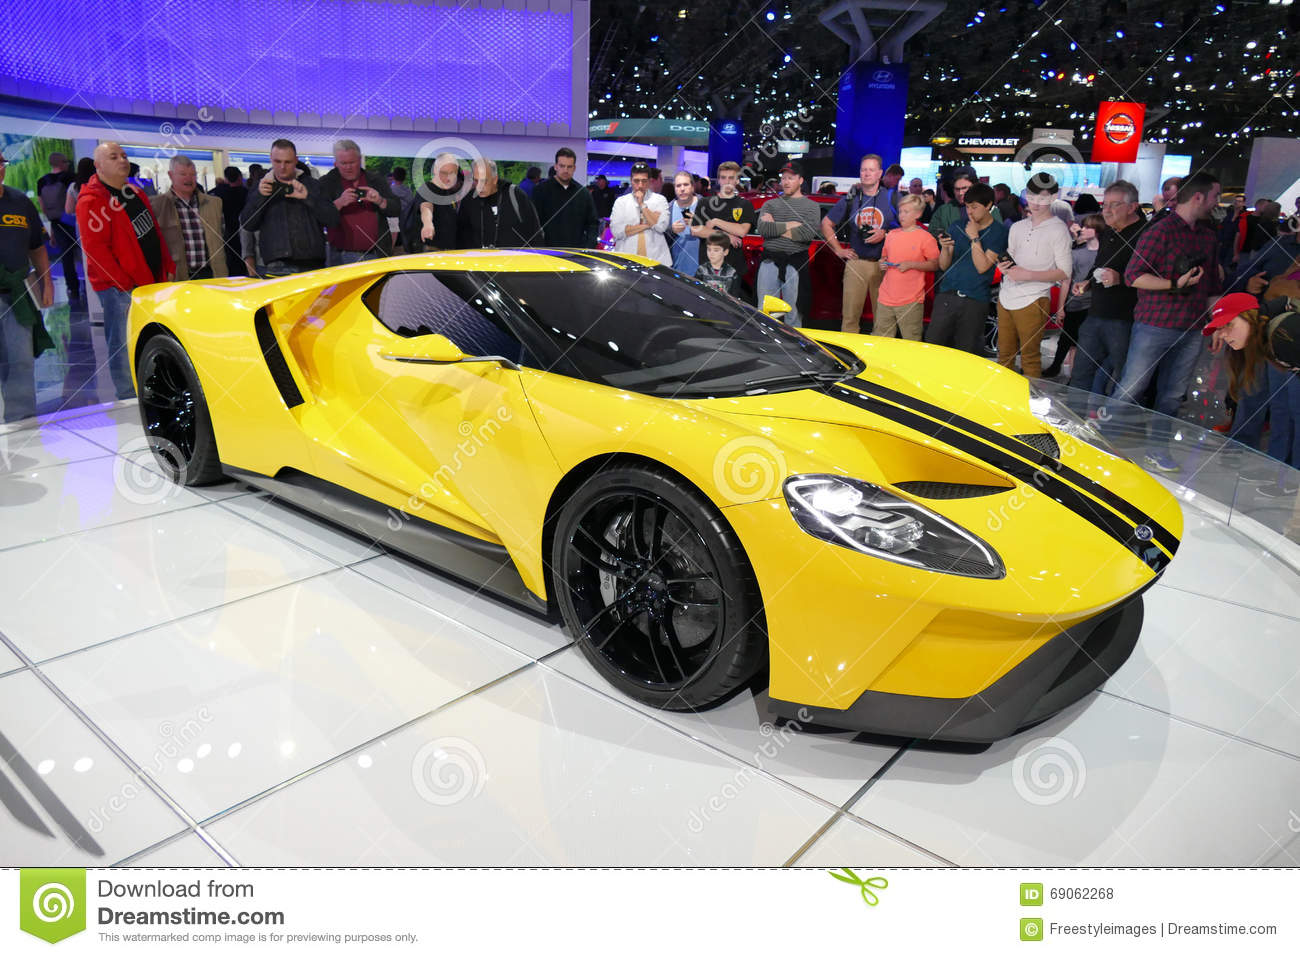 Ford GT Fords Supercar At New York International Auto ShowJPG - Javits car show